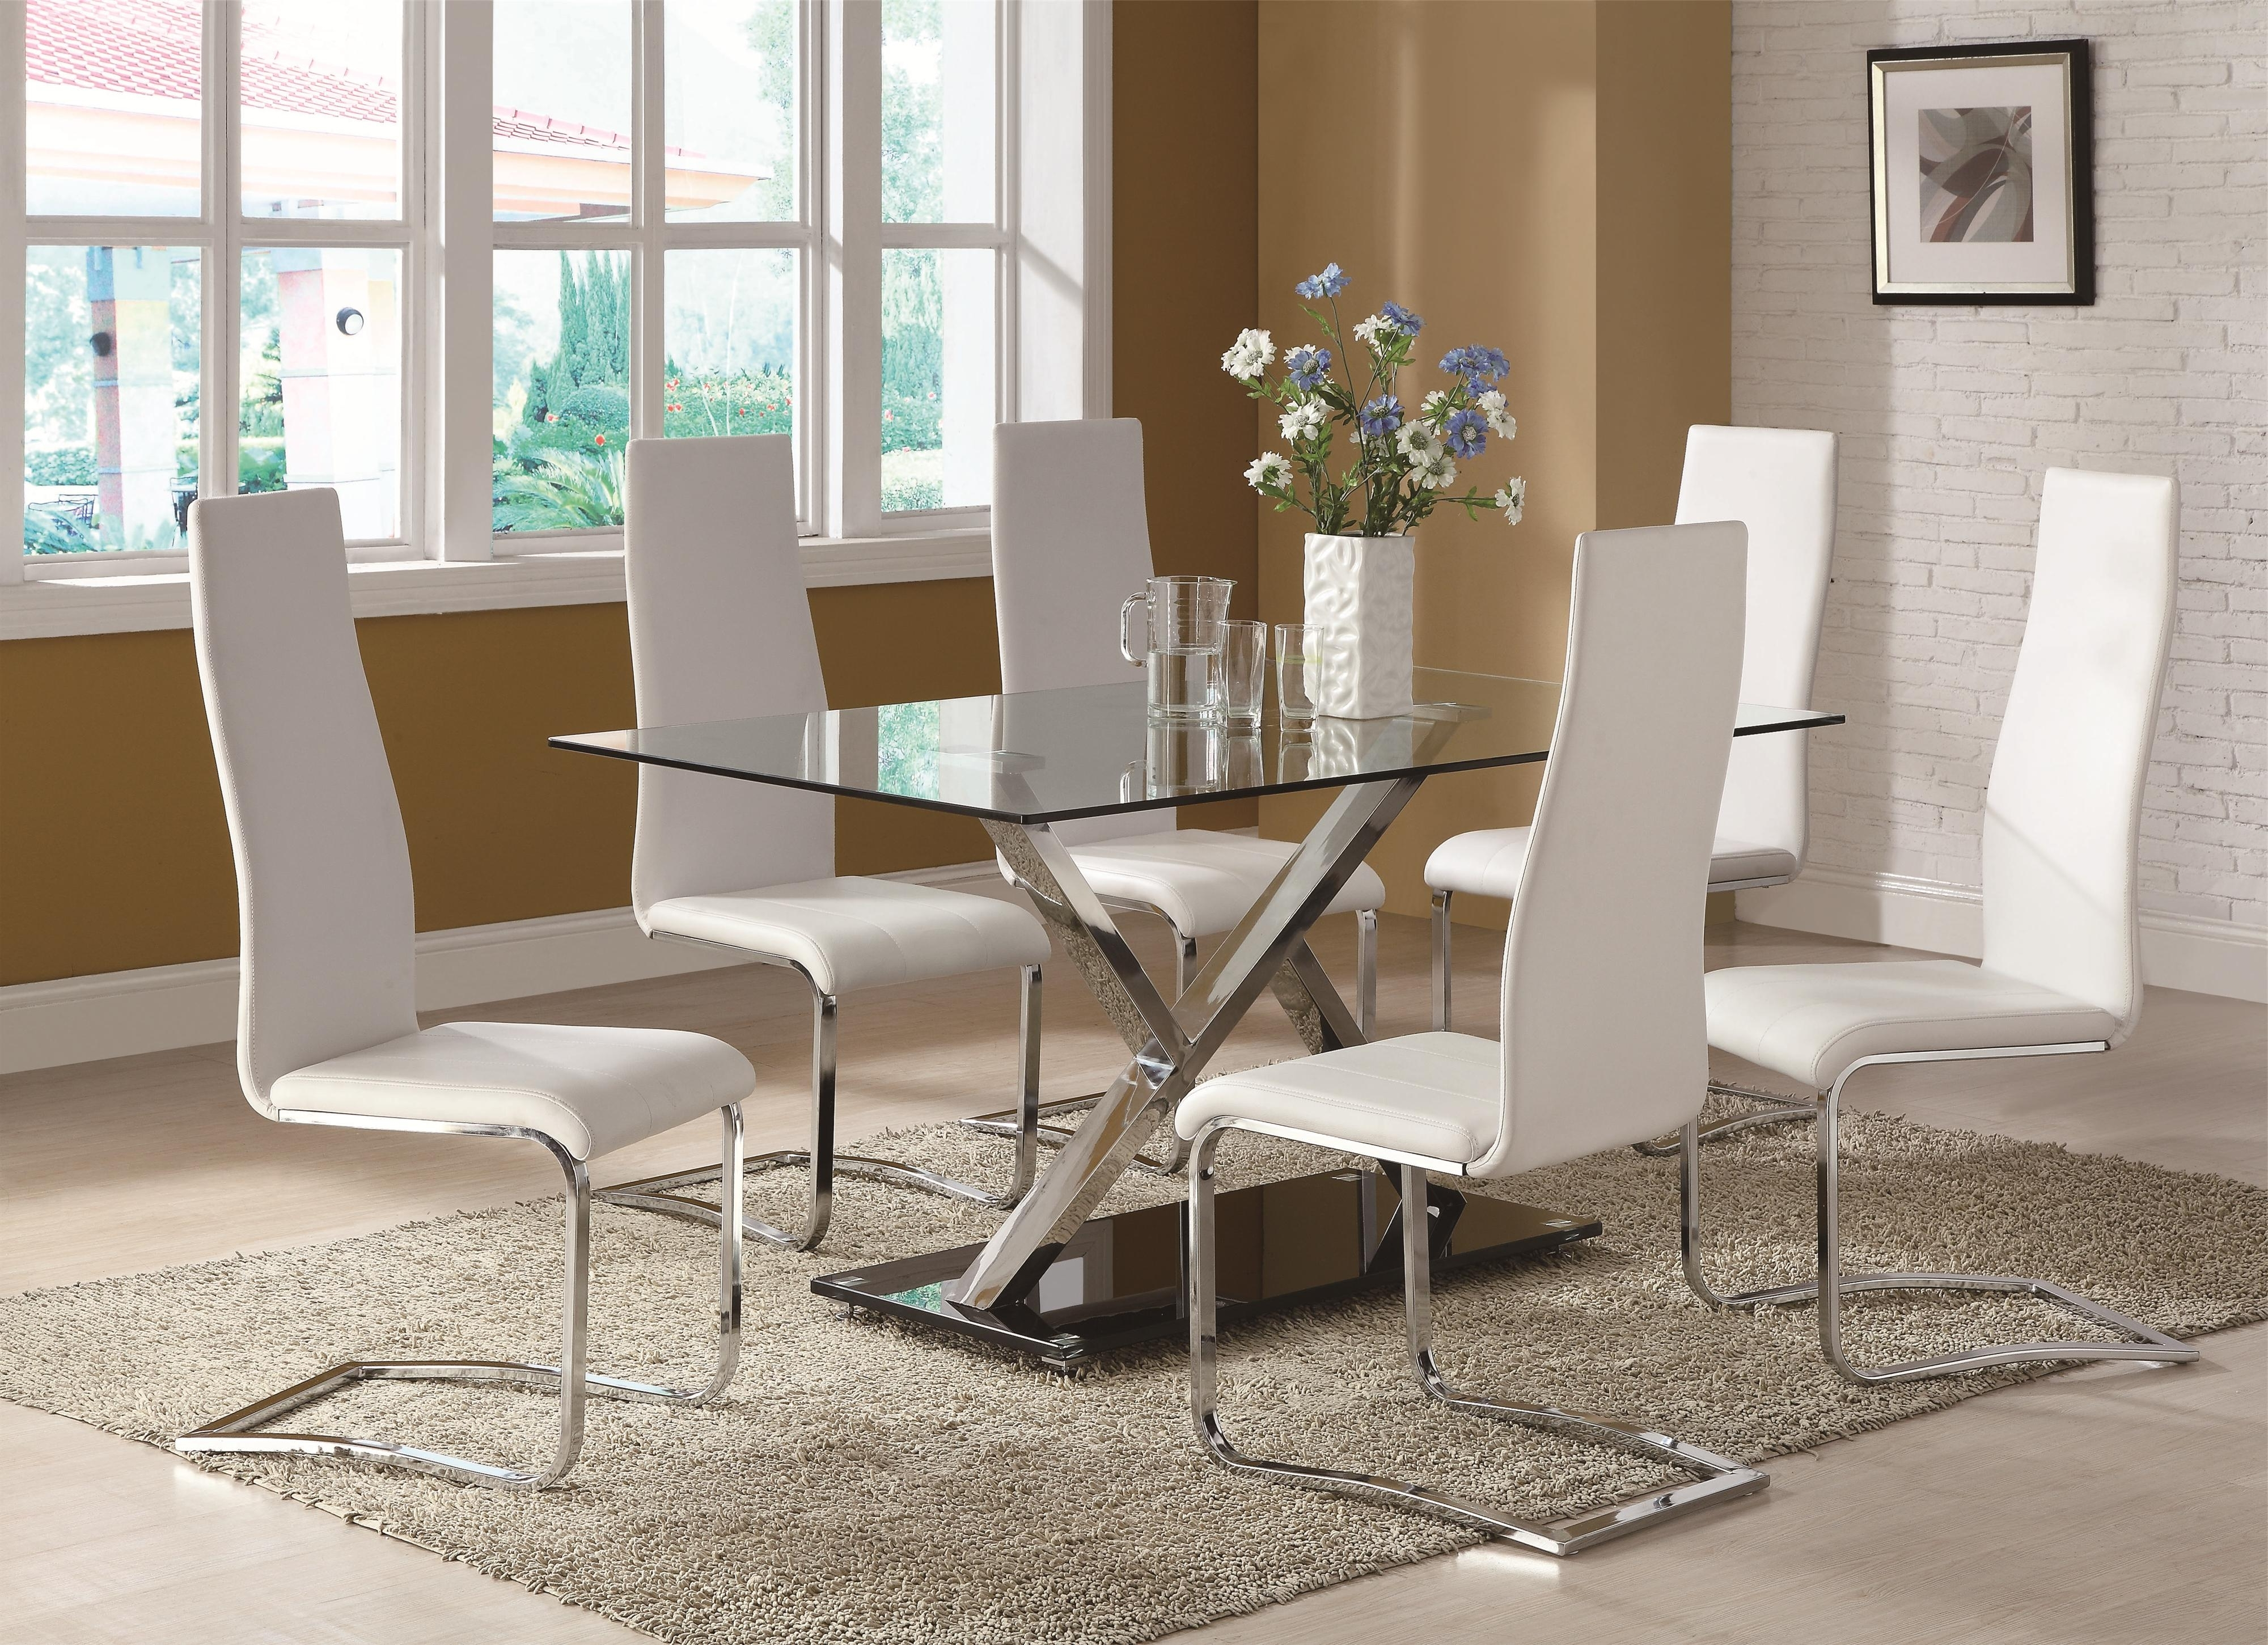 Contemporary Base Dining Tables With Preferred Coaster Modern Dining White Dining Table With Chrome Metal Base (View 10 of 25)